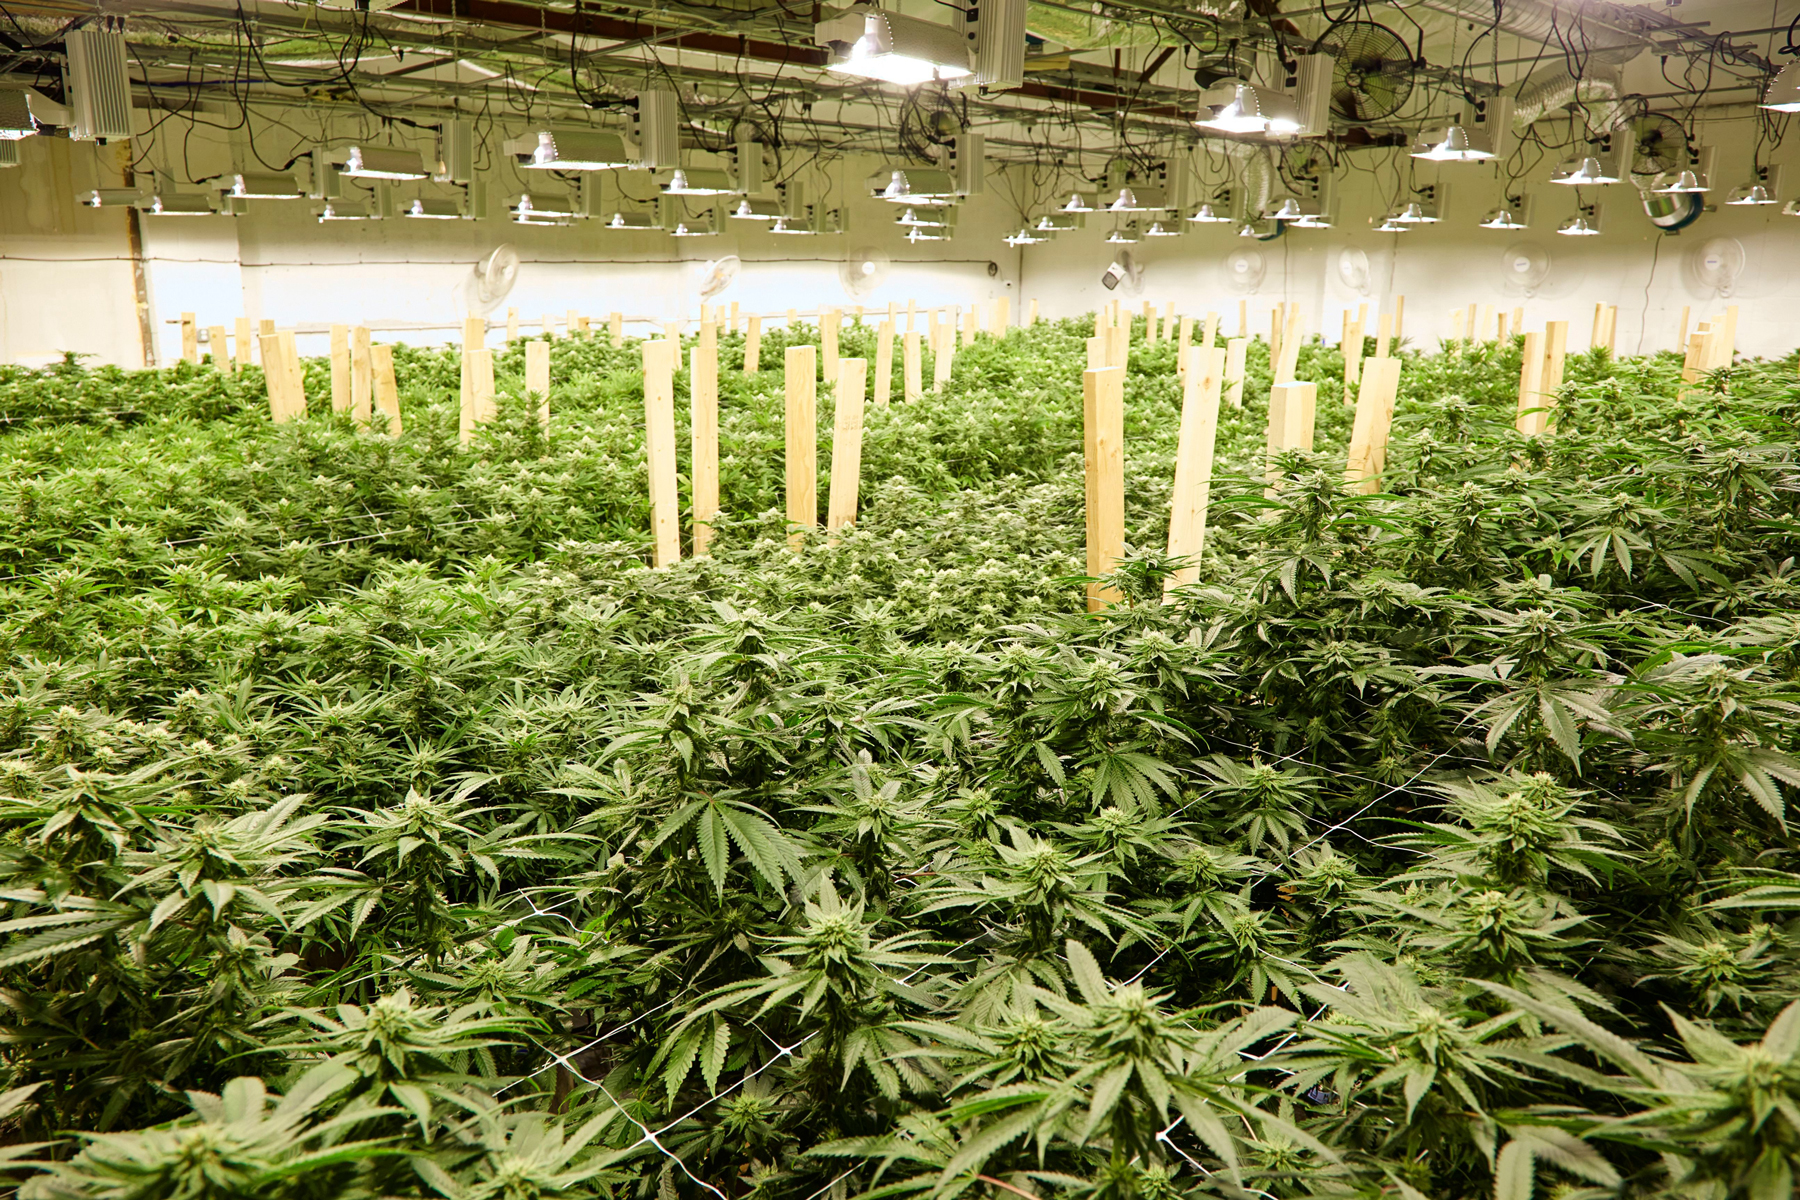 Canadian Weed Company Canopy Growth to Buy U.S. Firm Acreage After Legalization